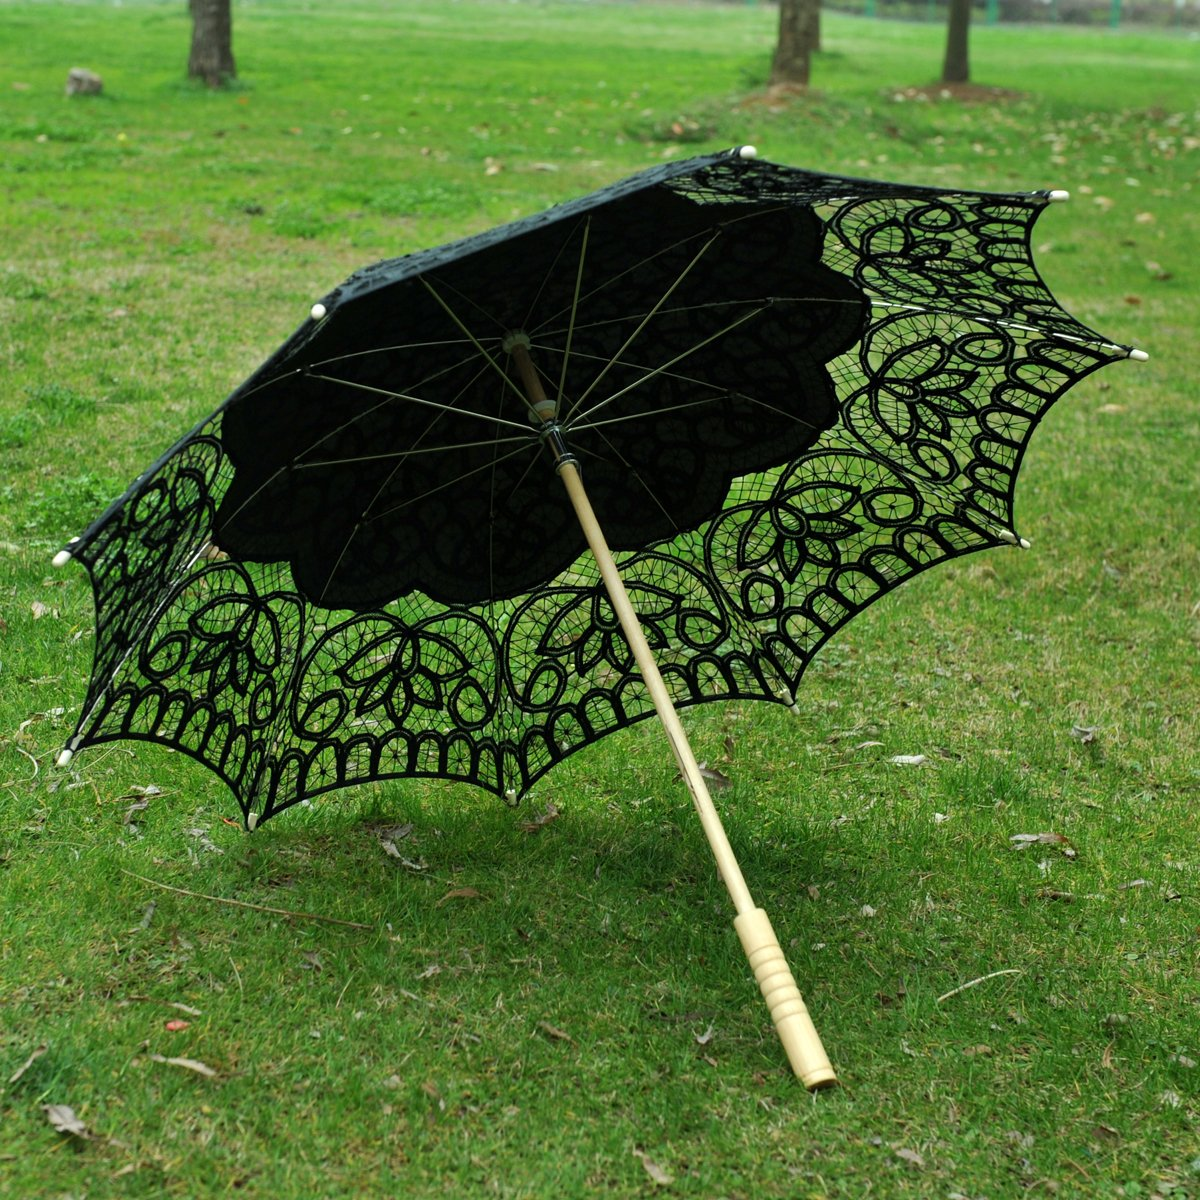 Topwedding Women's Cotton Lace Parasol with A Longer Wood Post Handle by Topwedding (Image #5)